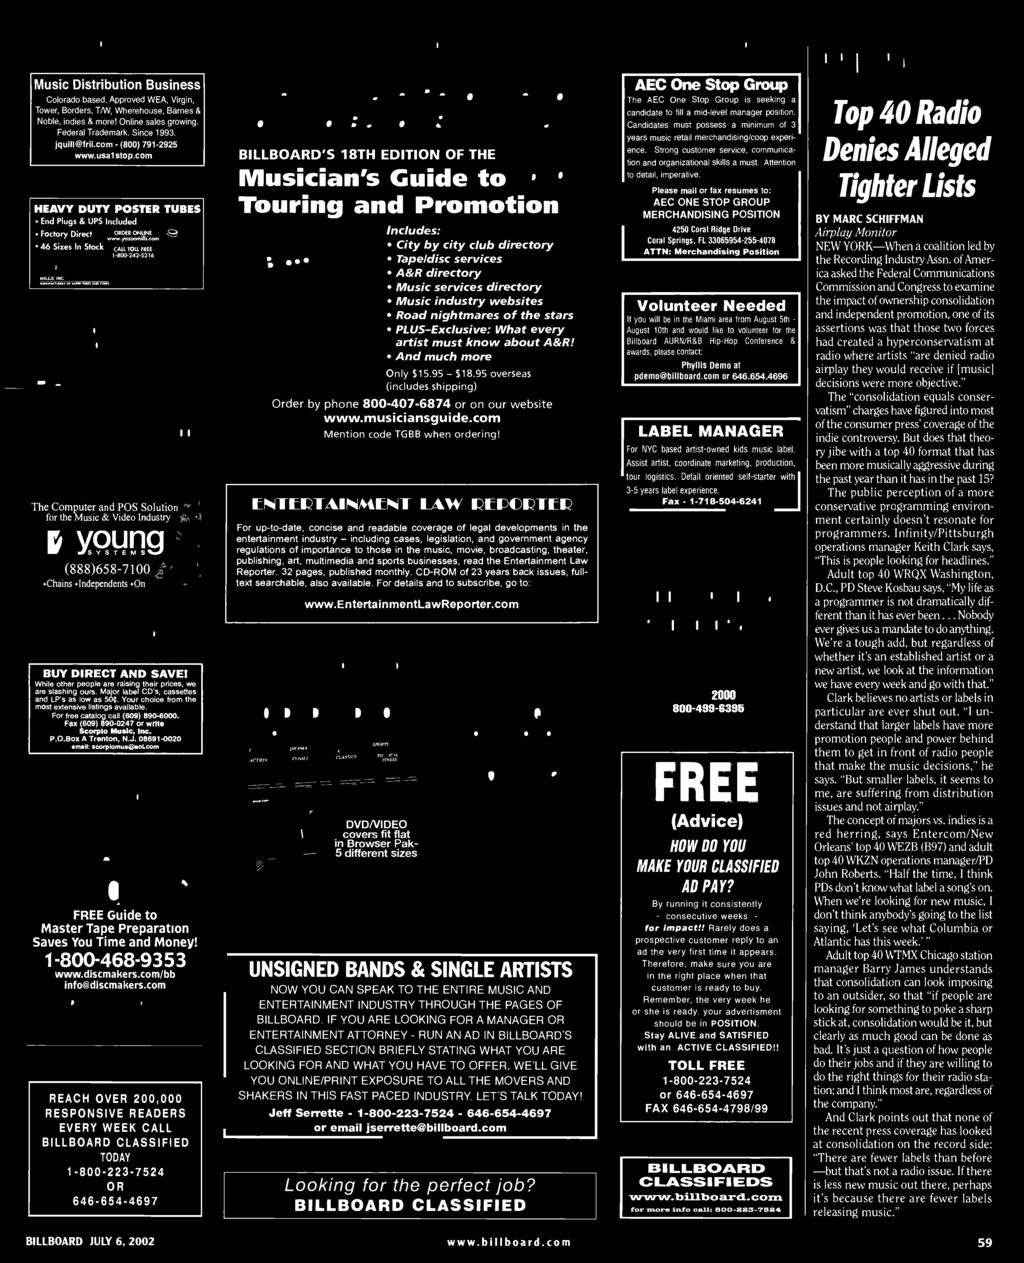 "CD -ROM of years back issues, full - text searchable, also available. For details and to subscribe, go to: www.entertainmentlawreporter.com *BROWSER"" DISPLAY SYSTEMS* 0 DVD /VIDEO TITLES in SQ. FT."